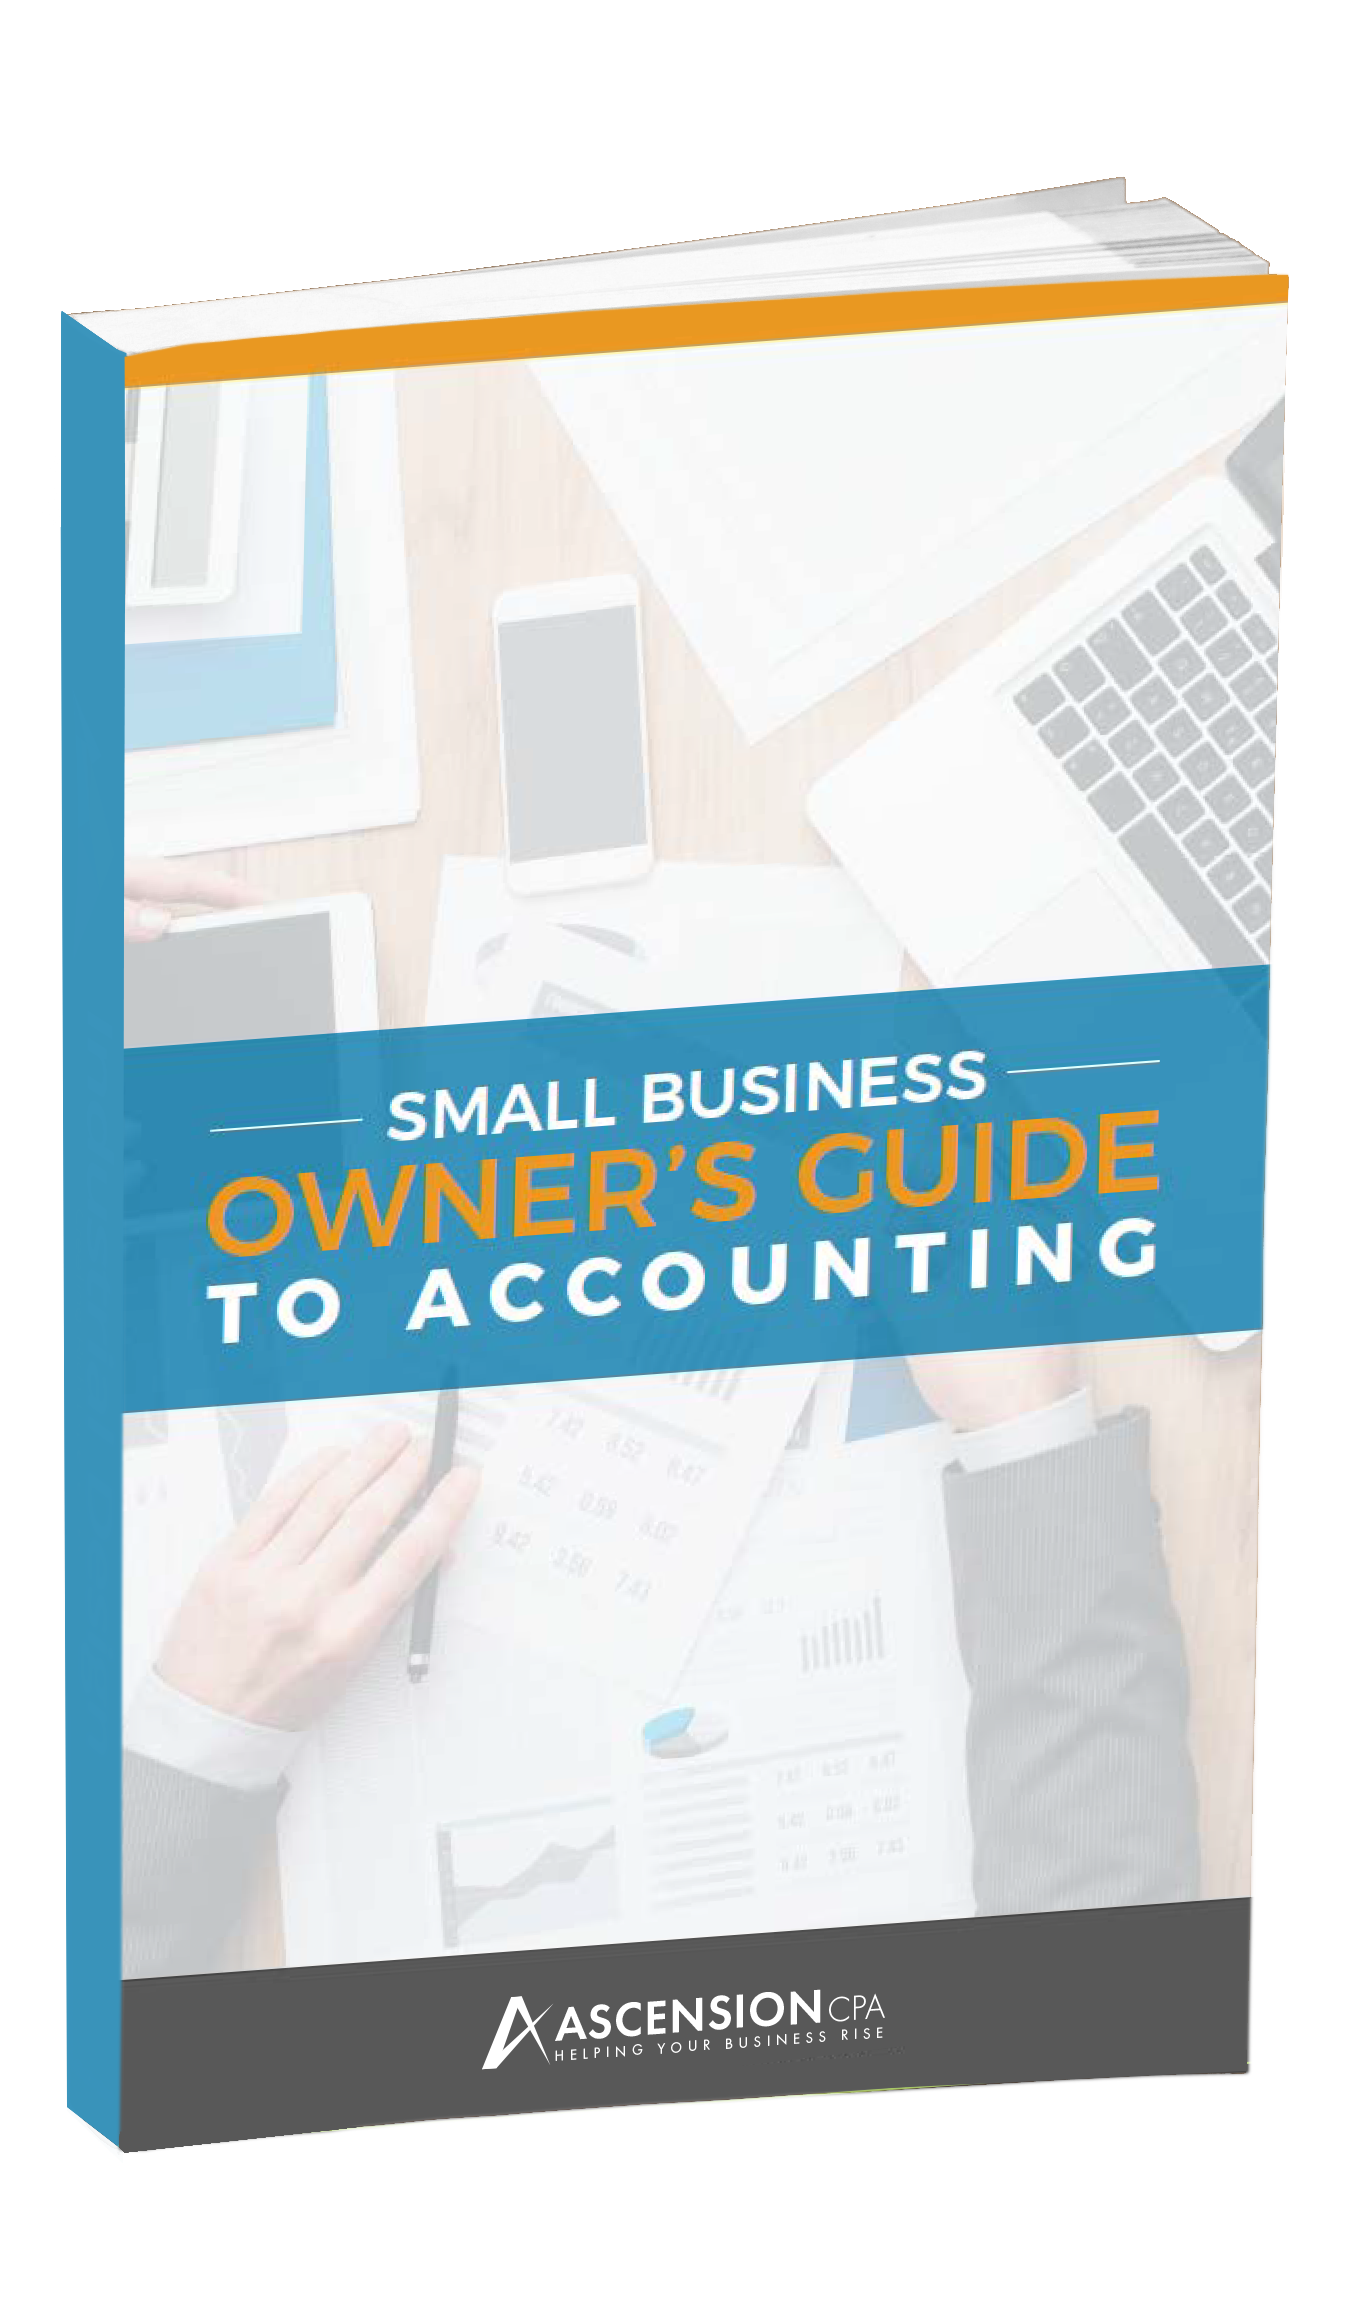 SMB Owners Guide to Accounting Book Mockup